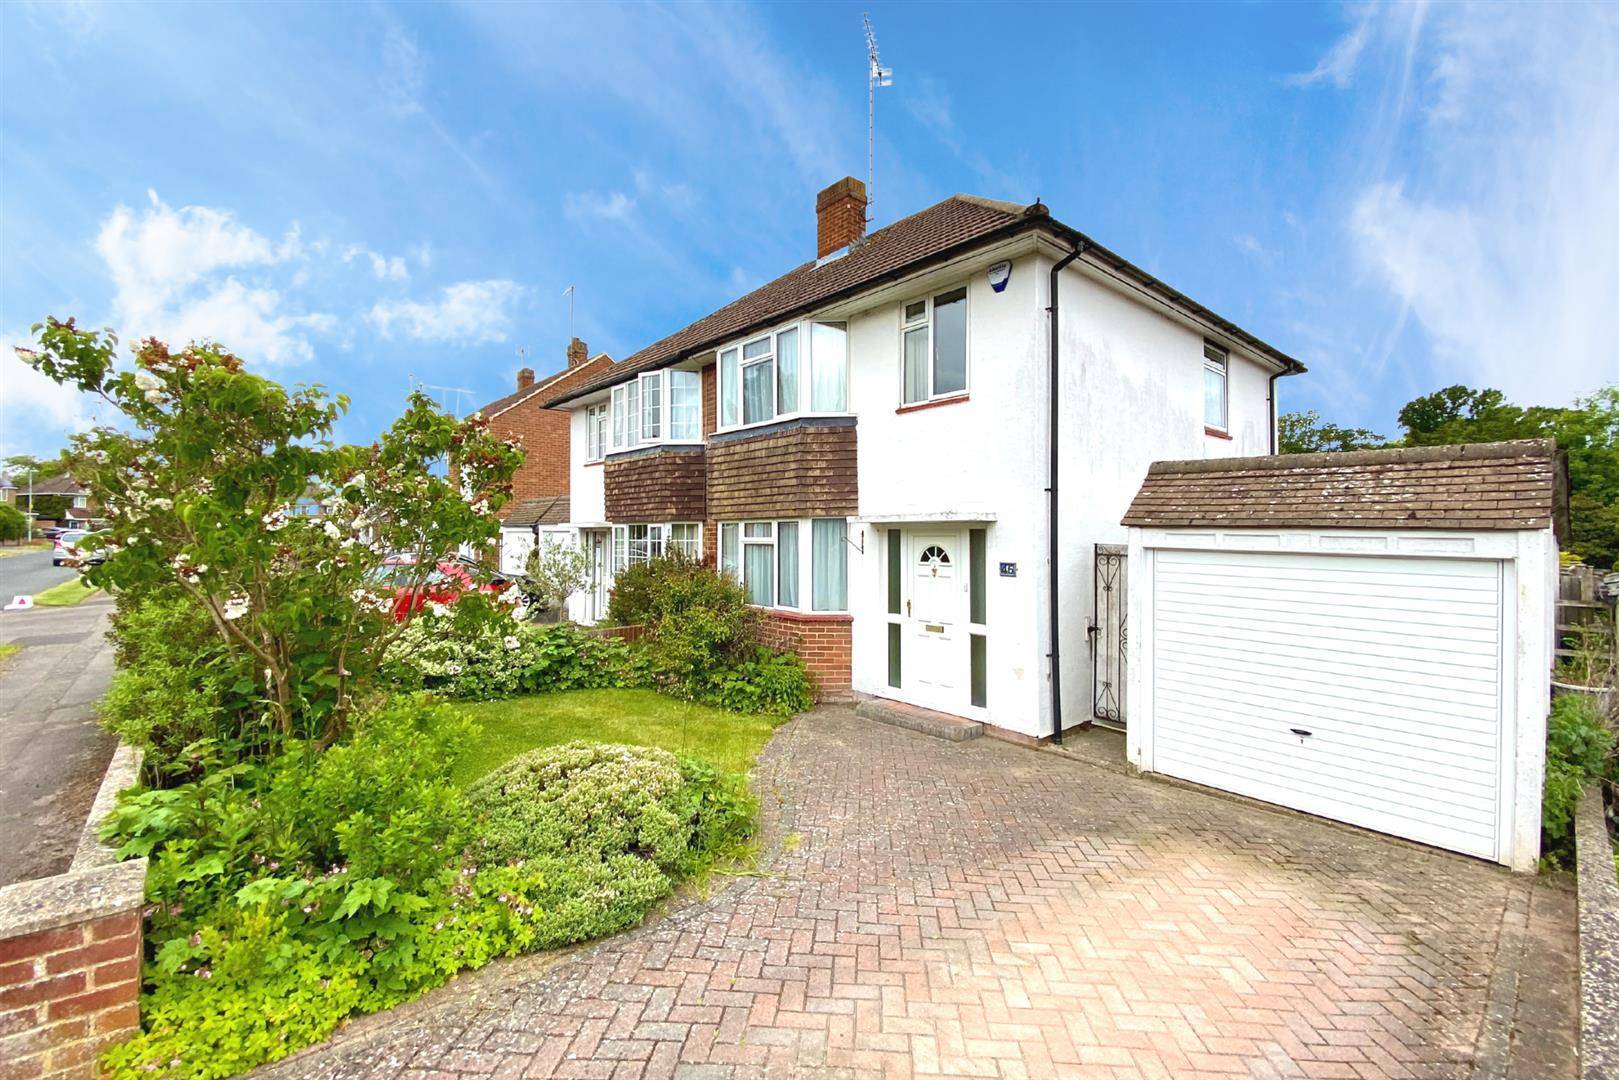 3 bed semi-detached for sale in Earley, RG6